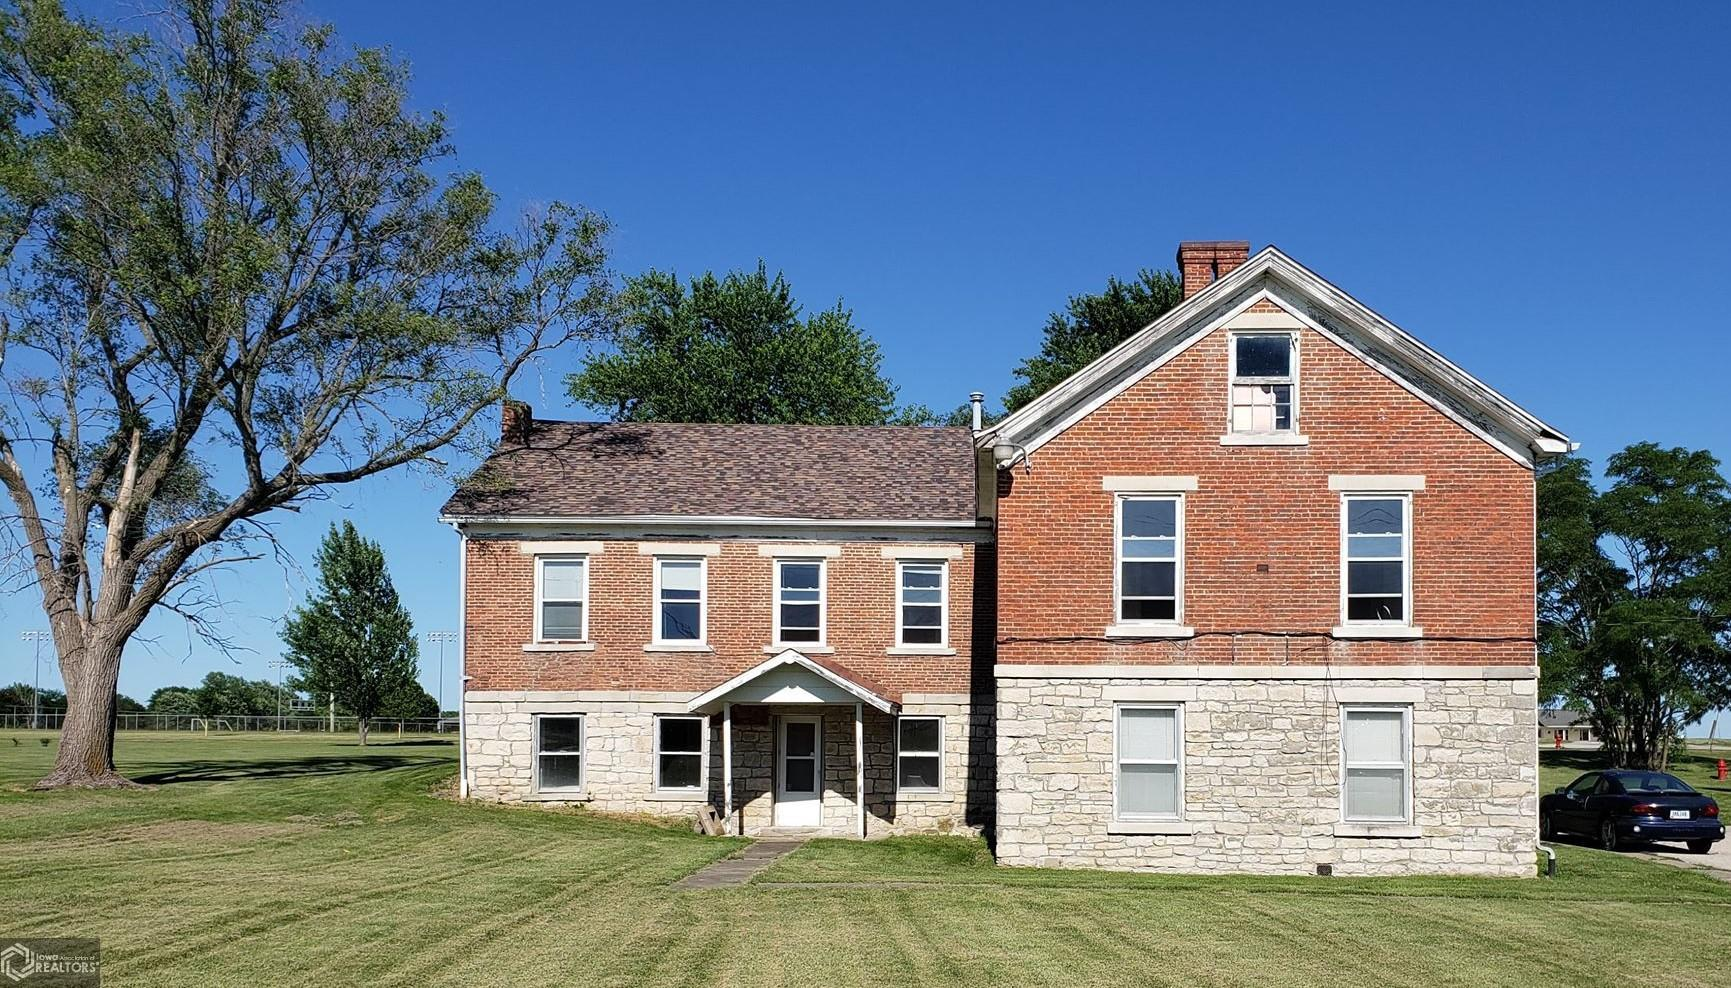 57 5th Property Photo - West Point, IA real estate listing